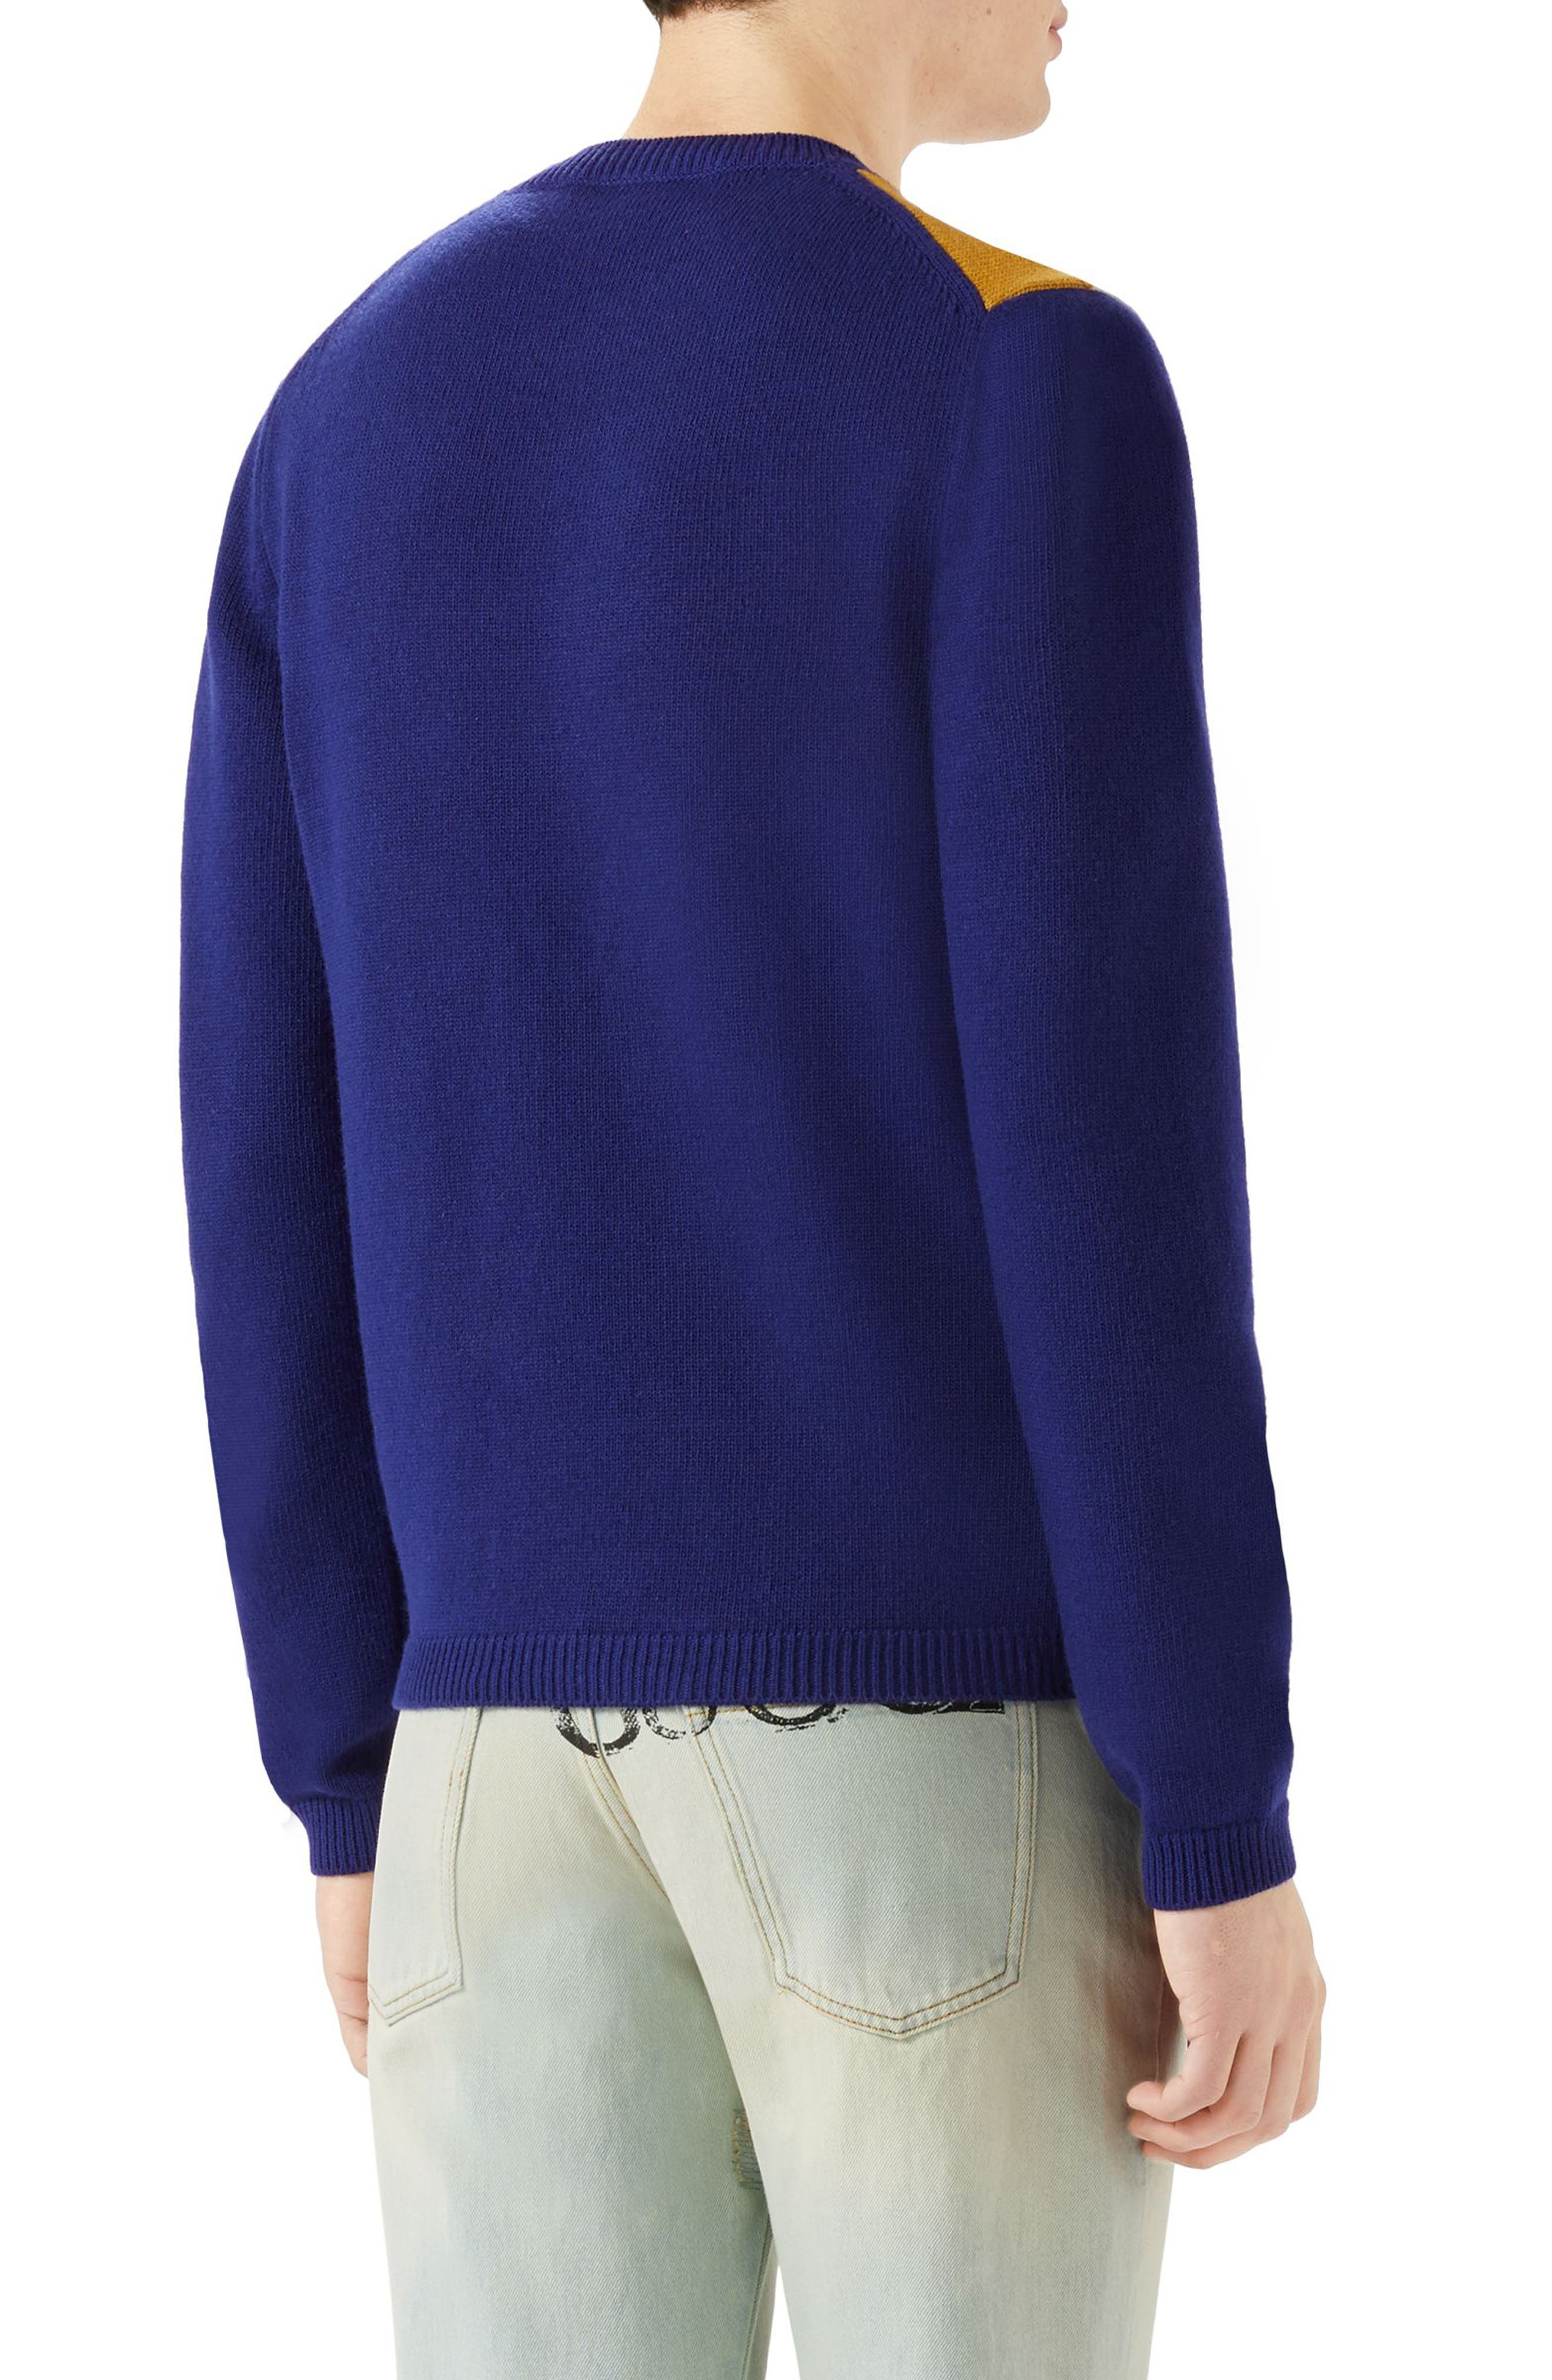 GUCCI,                             Intarsia V-Stripe Wool Sweater,                             Alternate thumbnail 2, color,                             400